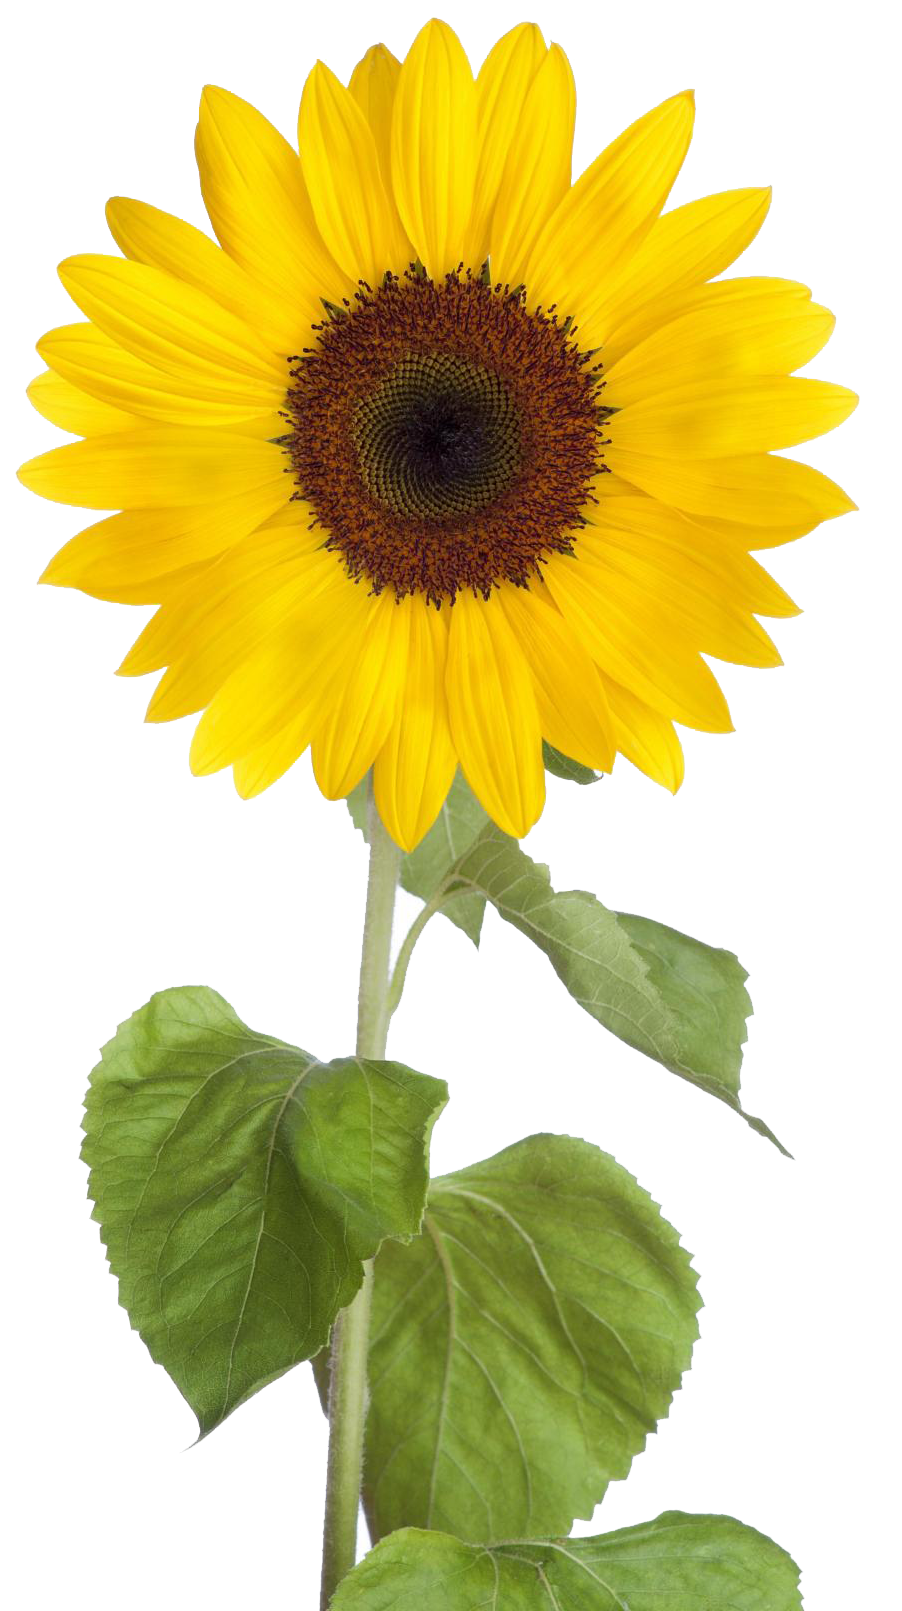 Sun flower png. Free download sunflower images